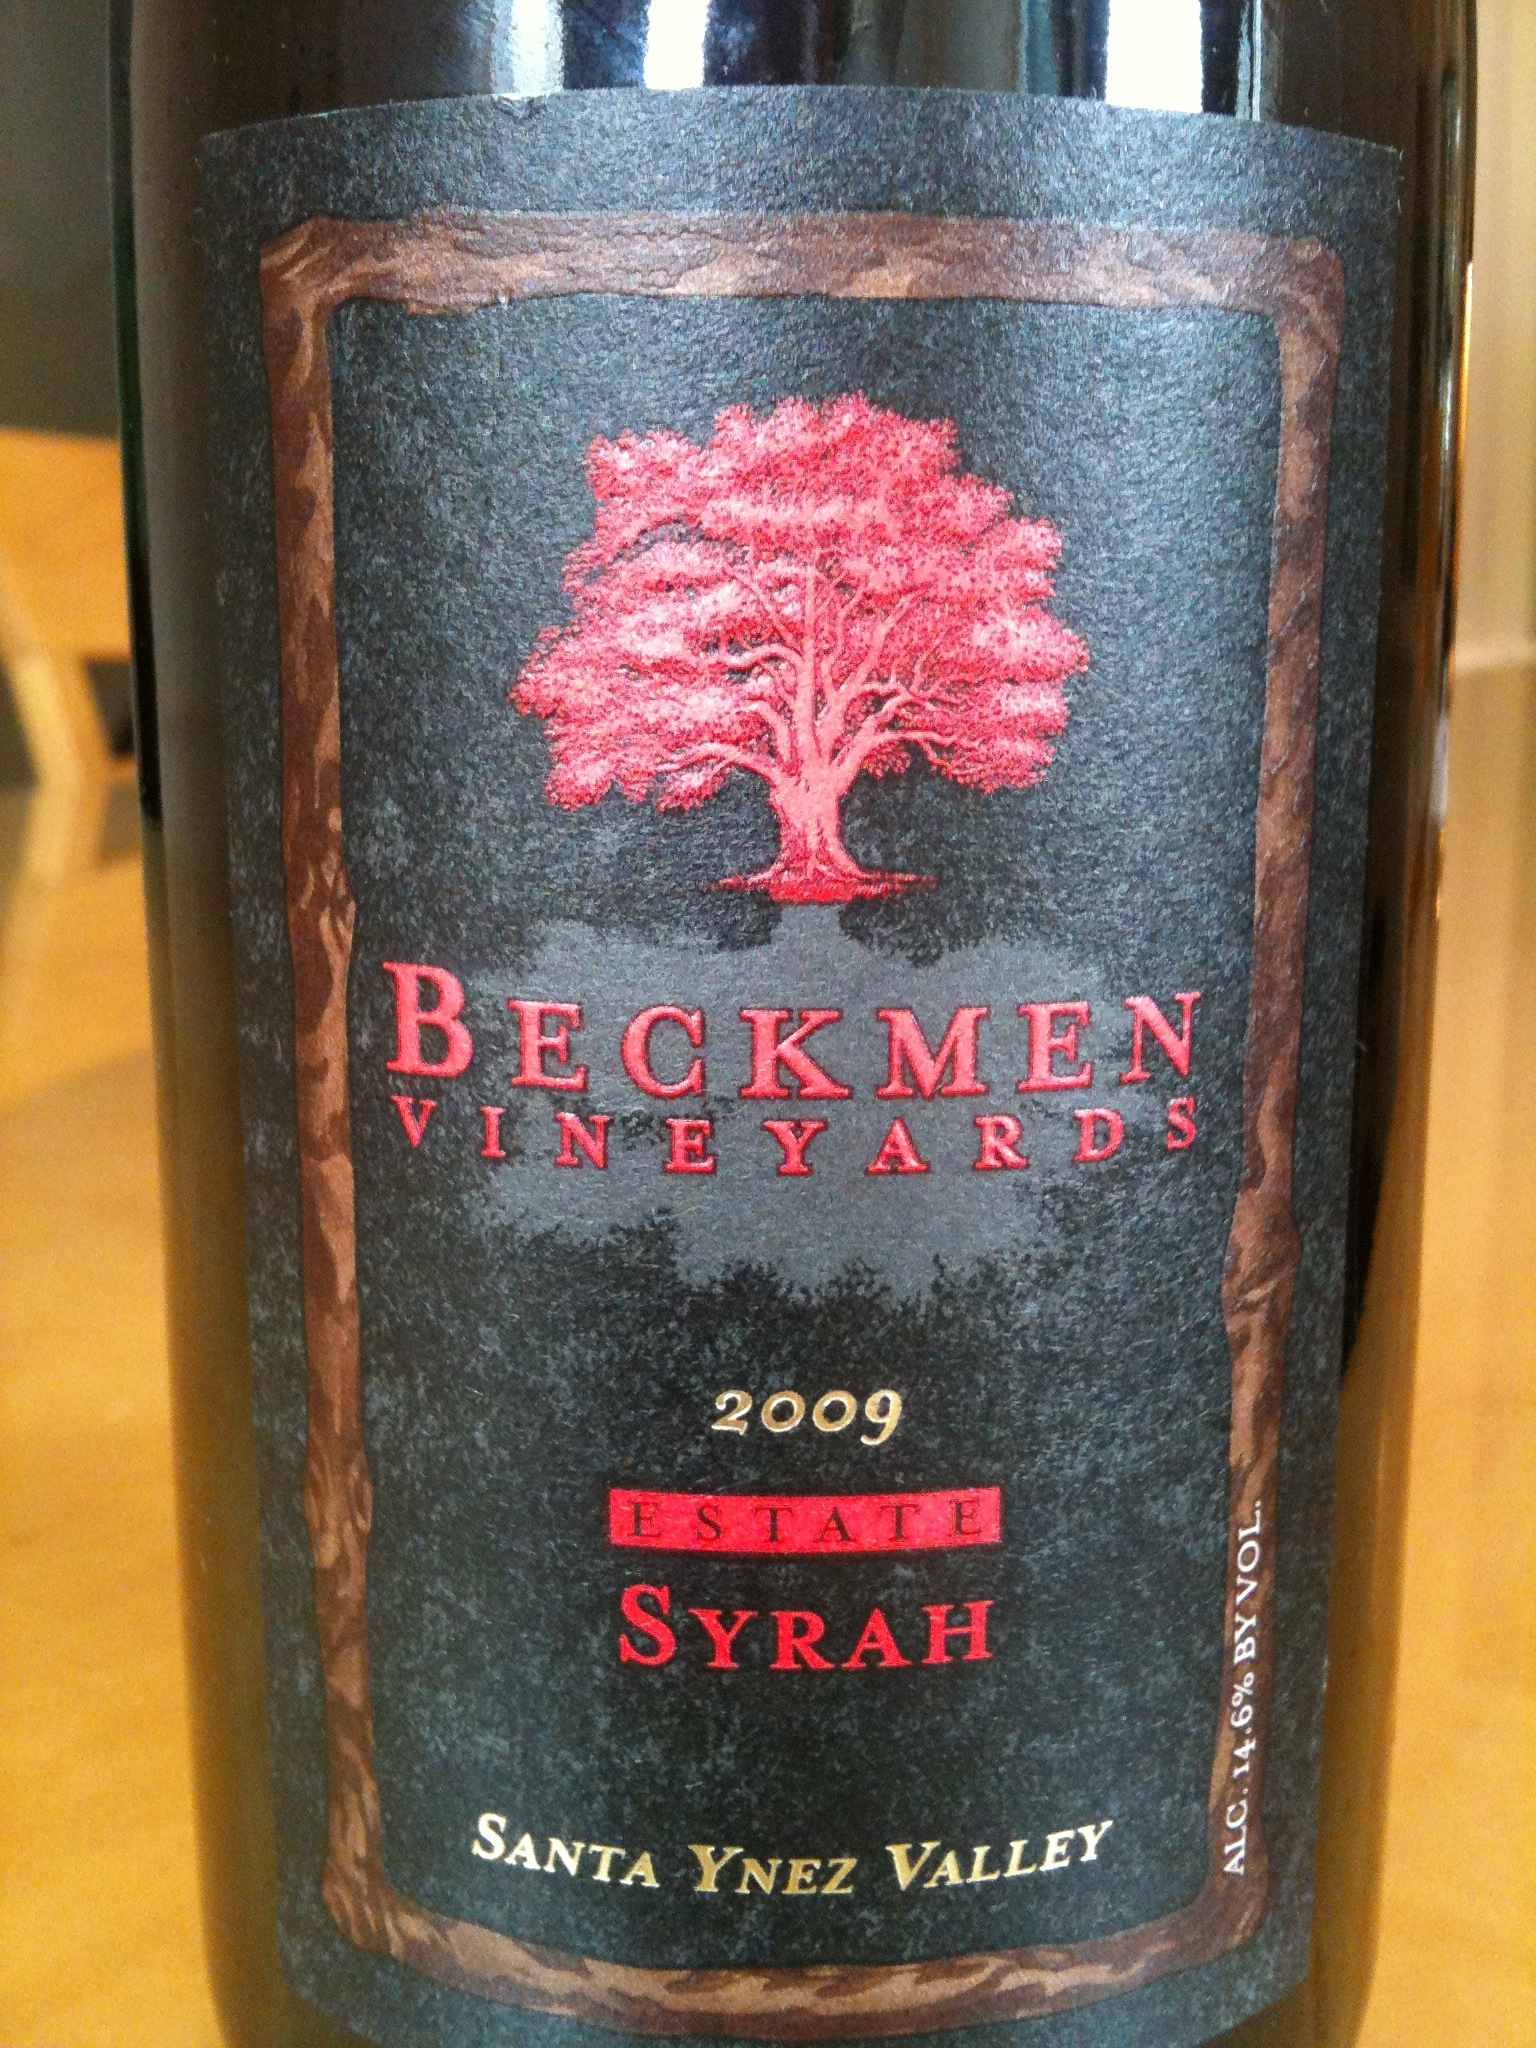 Beckmen Vineyards 2009 Estate Syrah Santa Ynez Valley - Wine Review